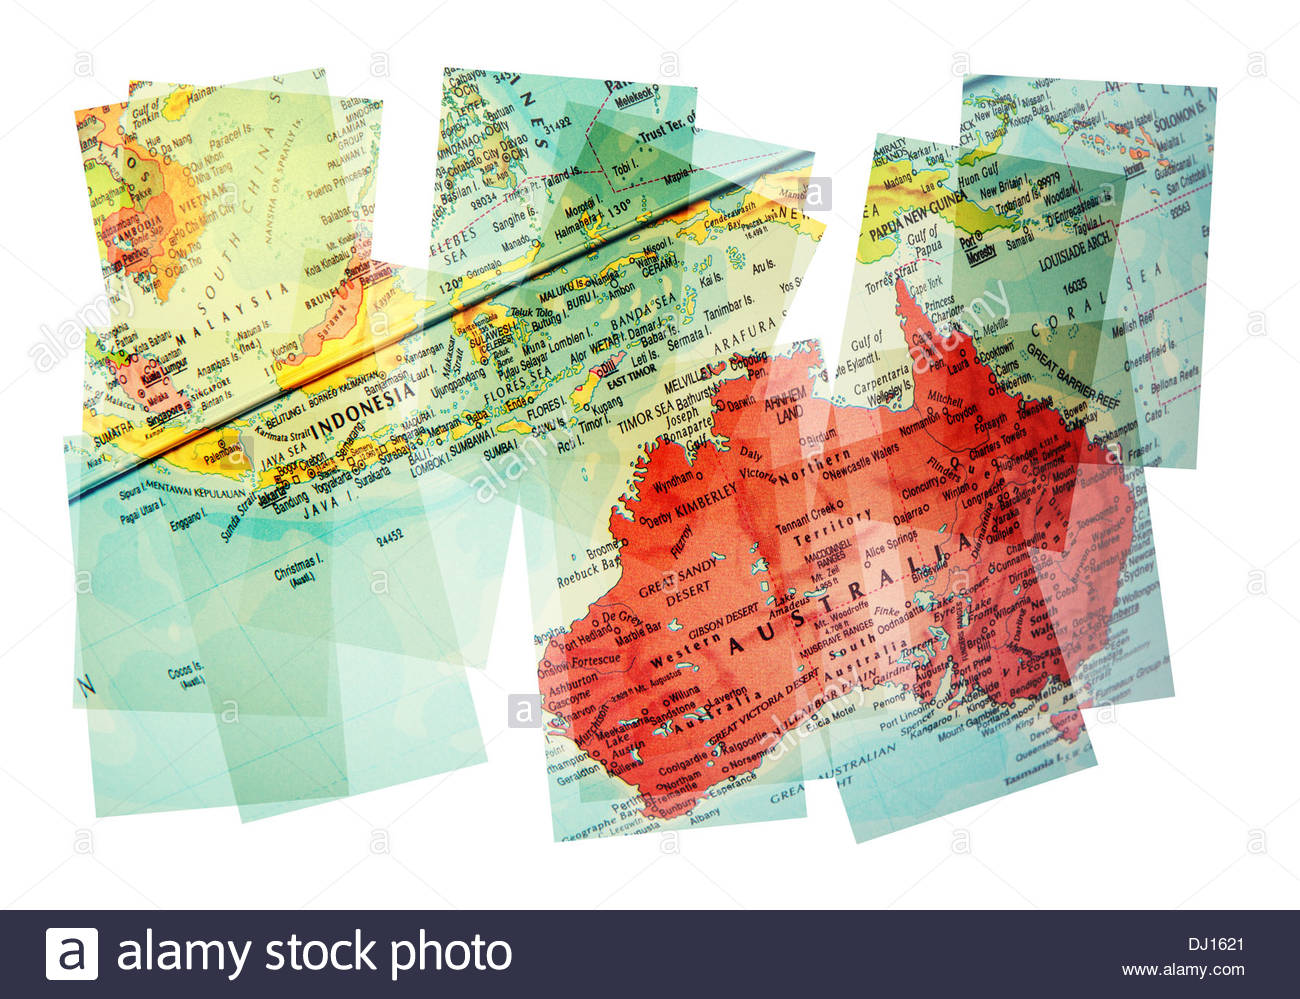 Australia map collage stock photo 62721625 alamy australia map collage gumiabroncs